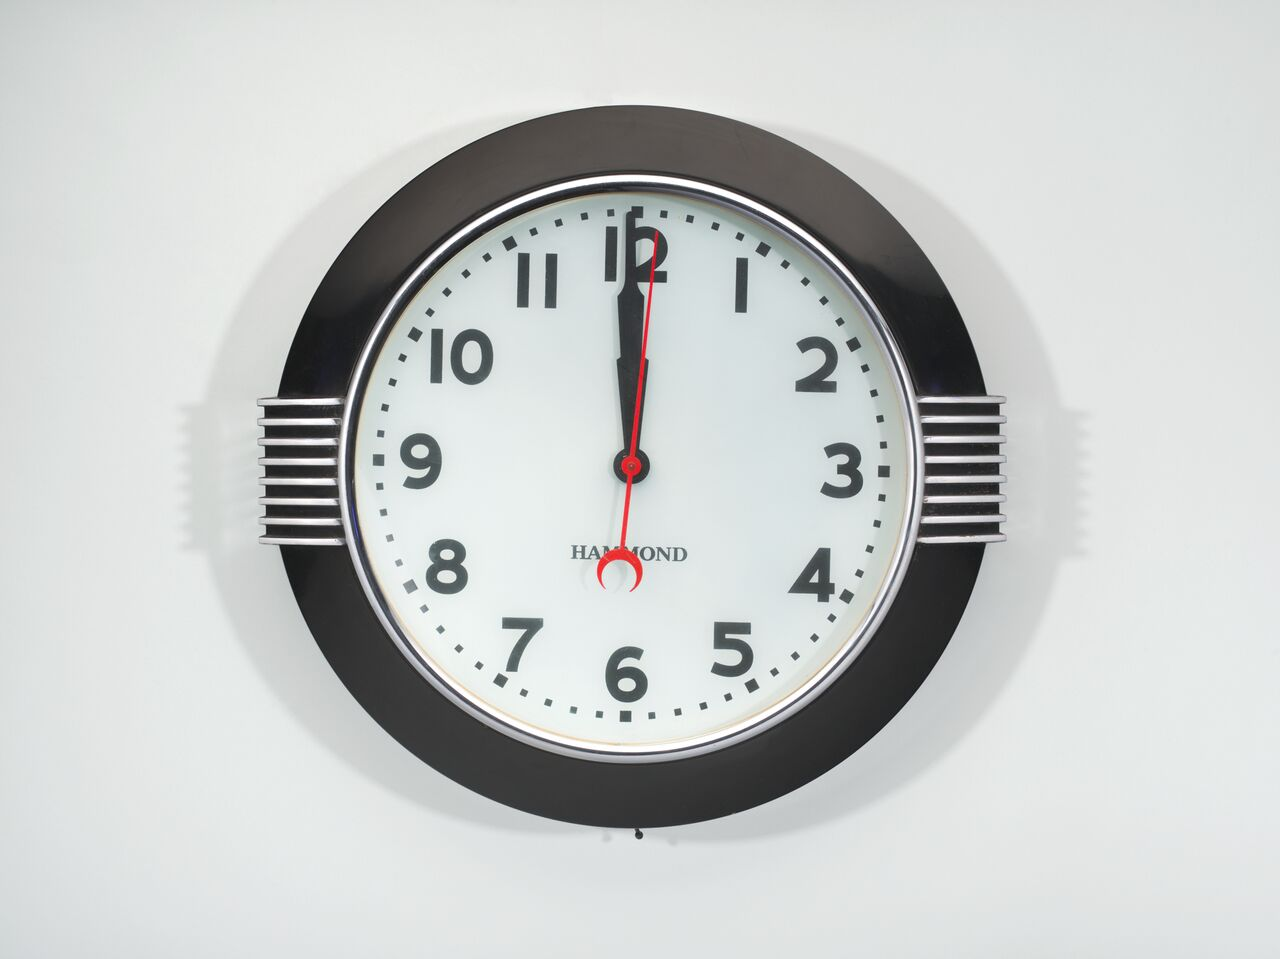 clockdesign.jpg